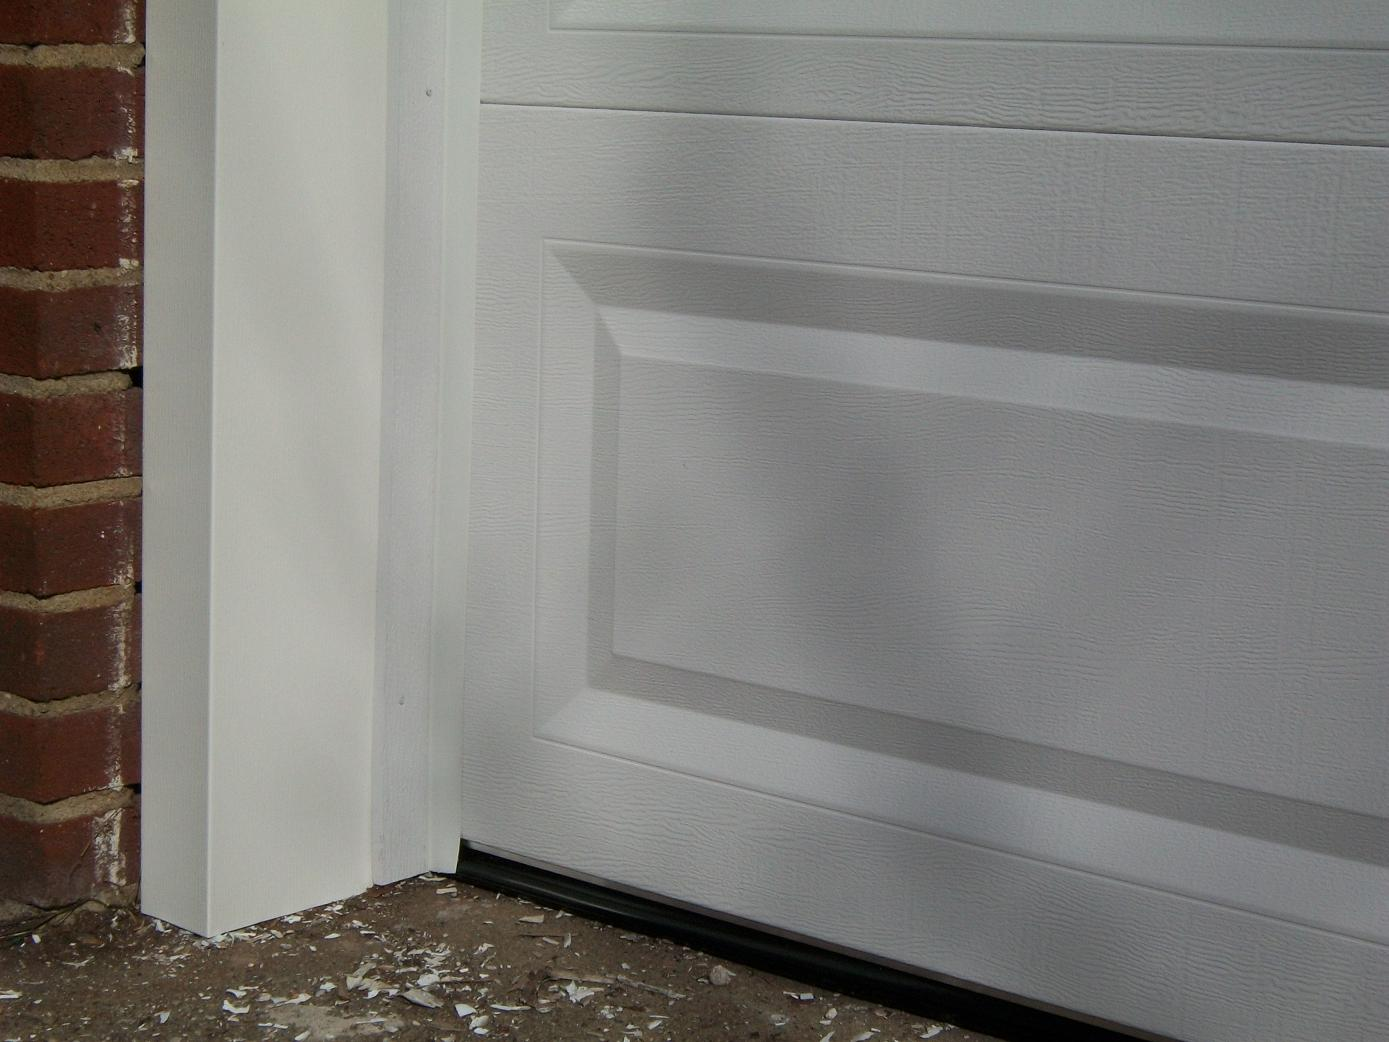 Garage door side seal strip - How To Seal Your Garage And Protect Your Home From Gases And Fumes